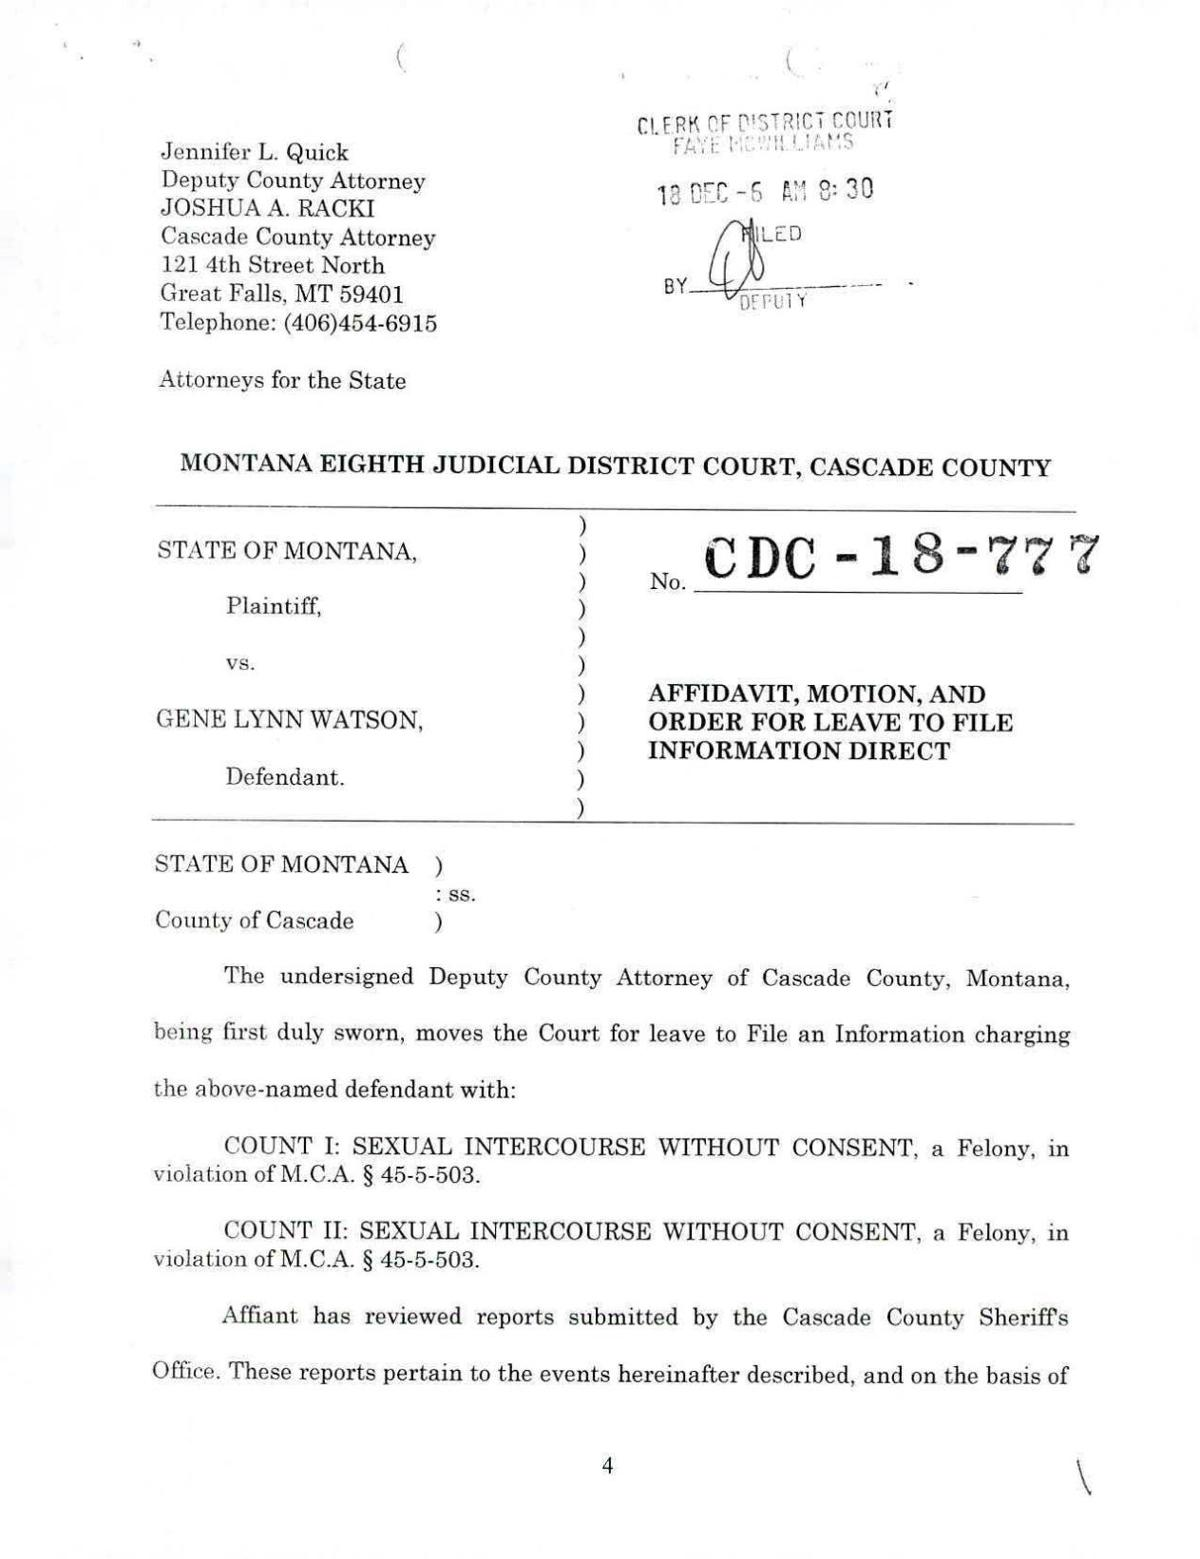 Gene Watson court documents